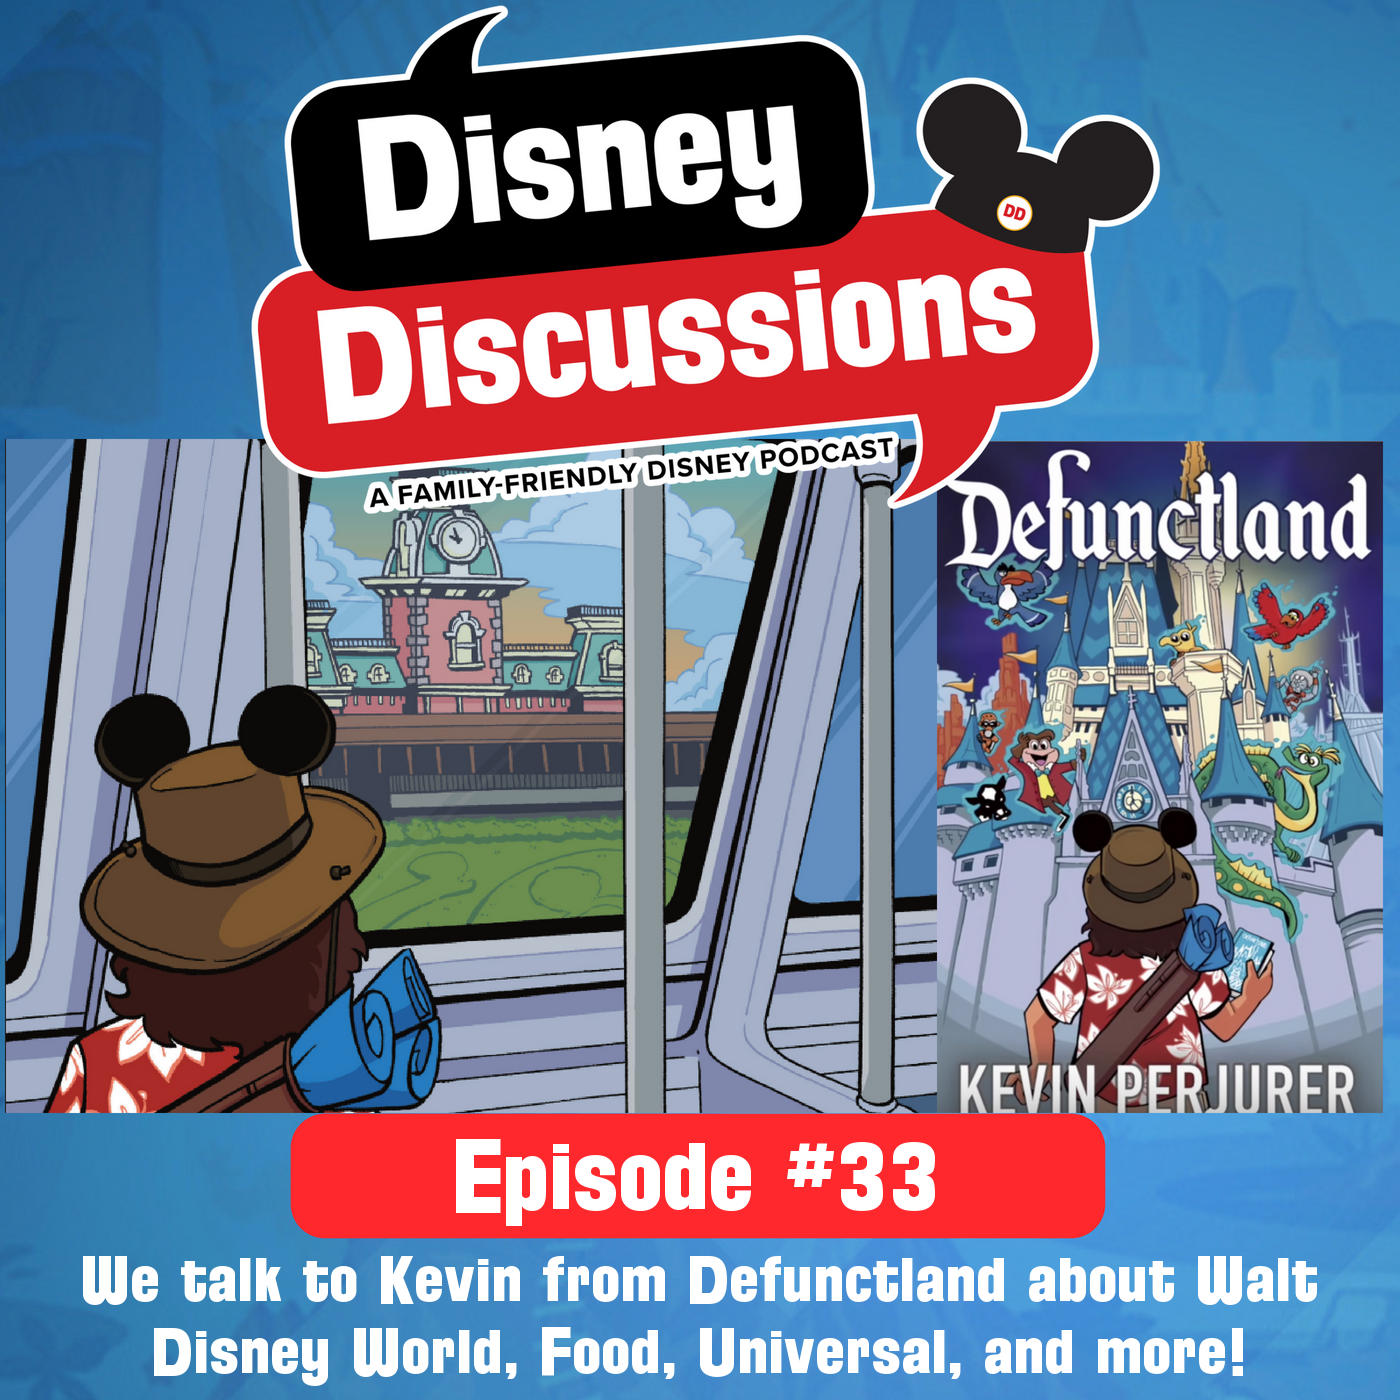 We talk to Kevin from Defunctland about Walt Disney World, Food, Universal, and more! - Disney Discussions